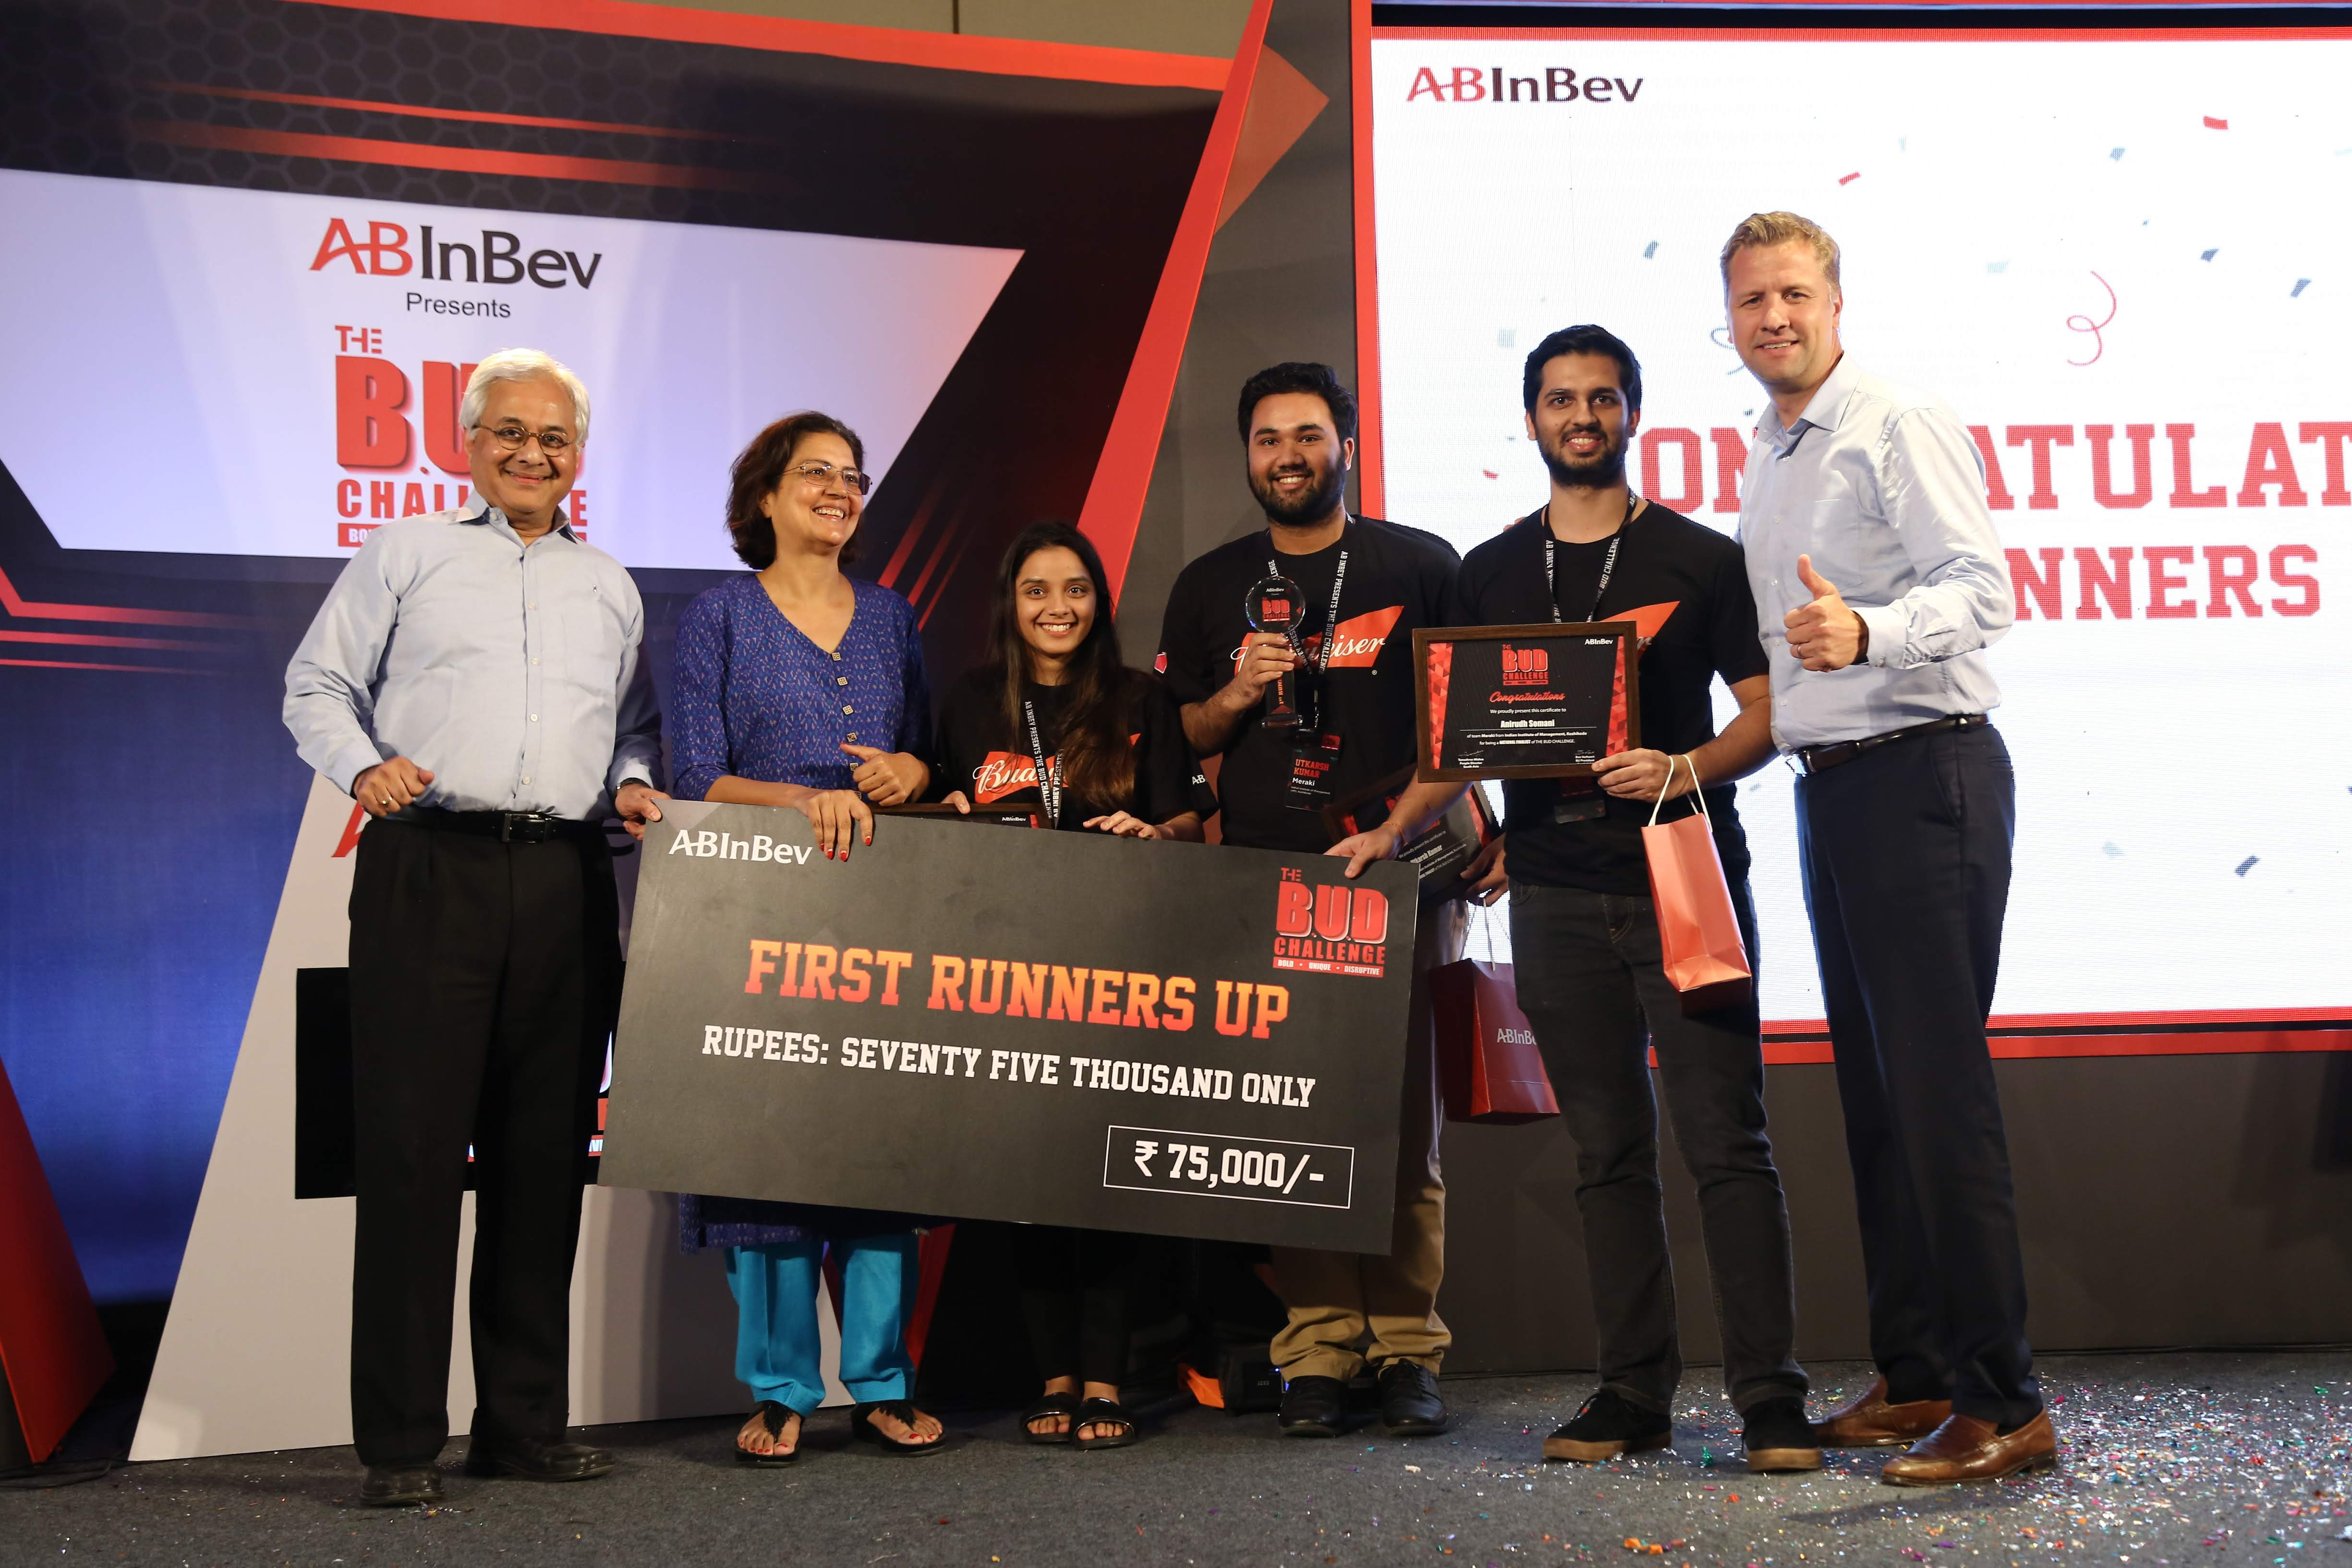 The enlightening journey of The BUD Challenge by AB InBev -By Team Meraki from IIM Kozhikode